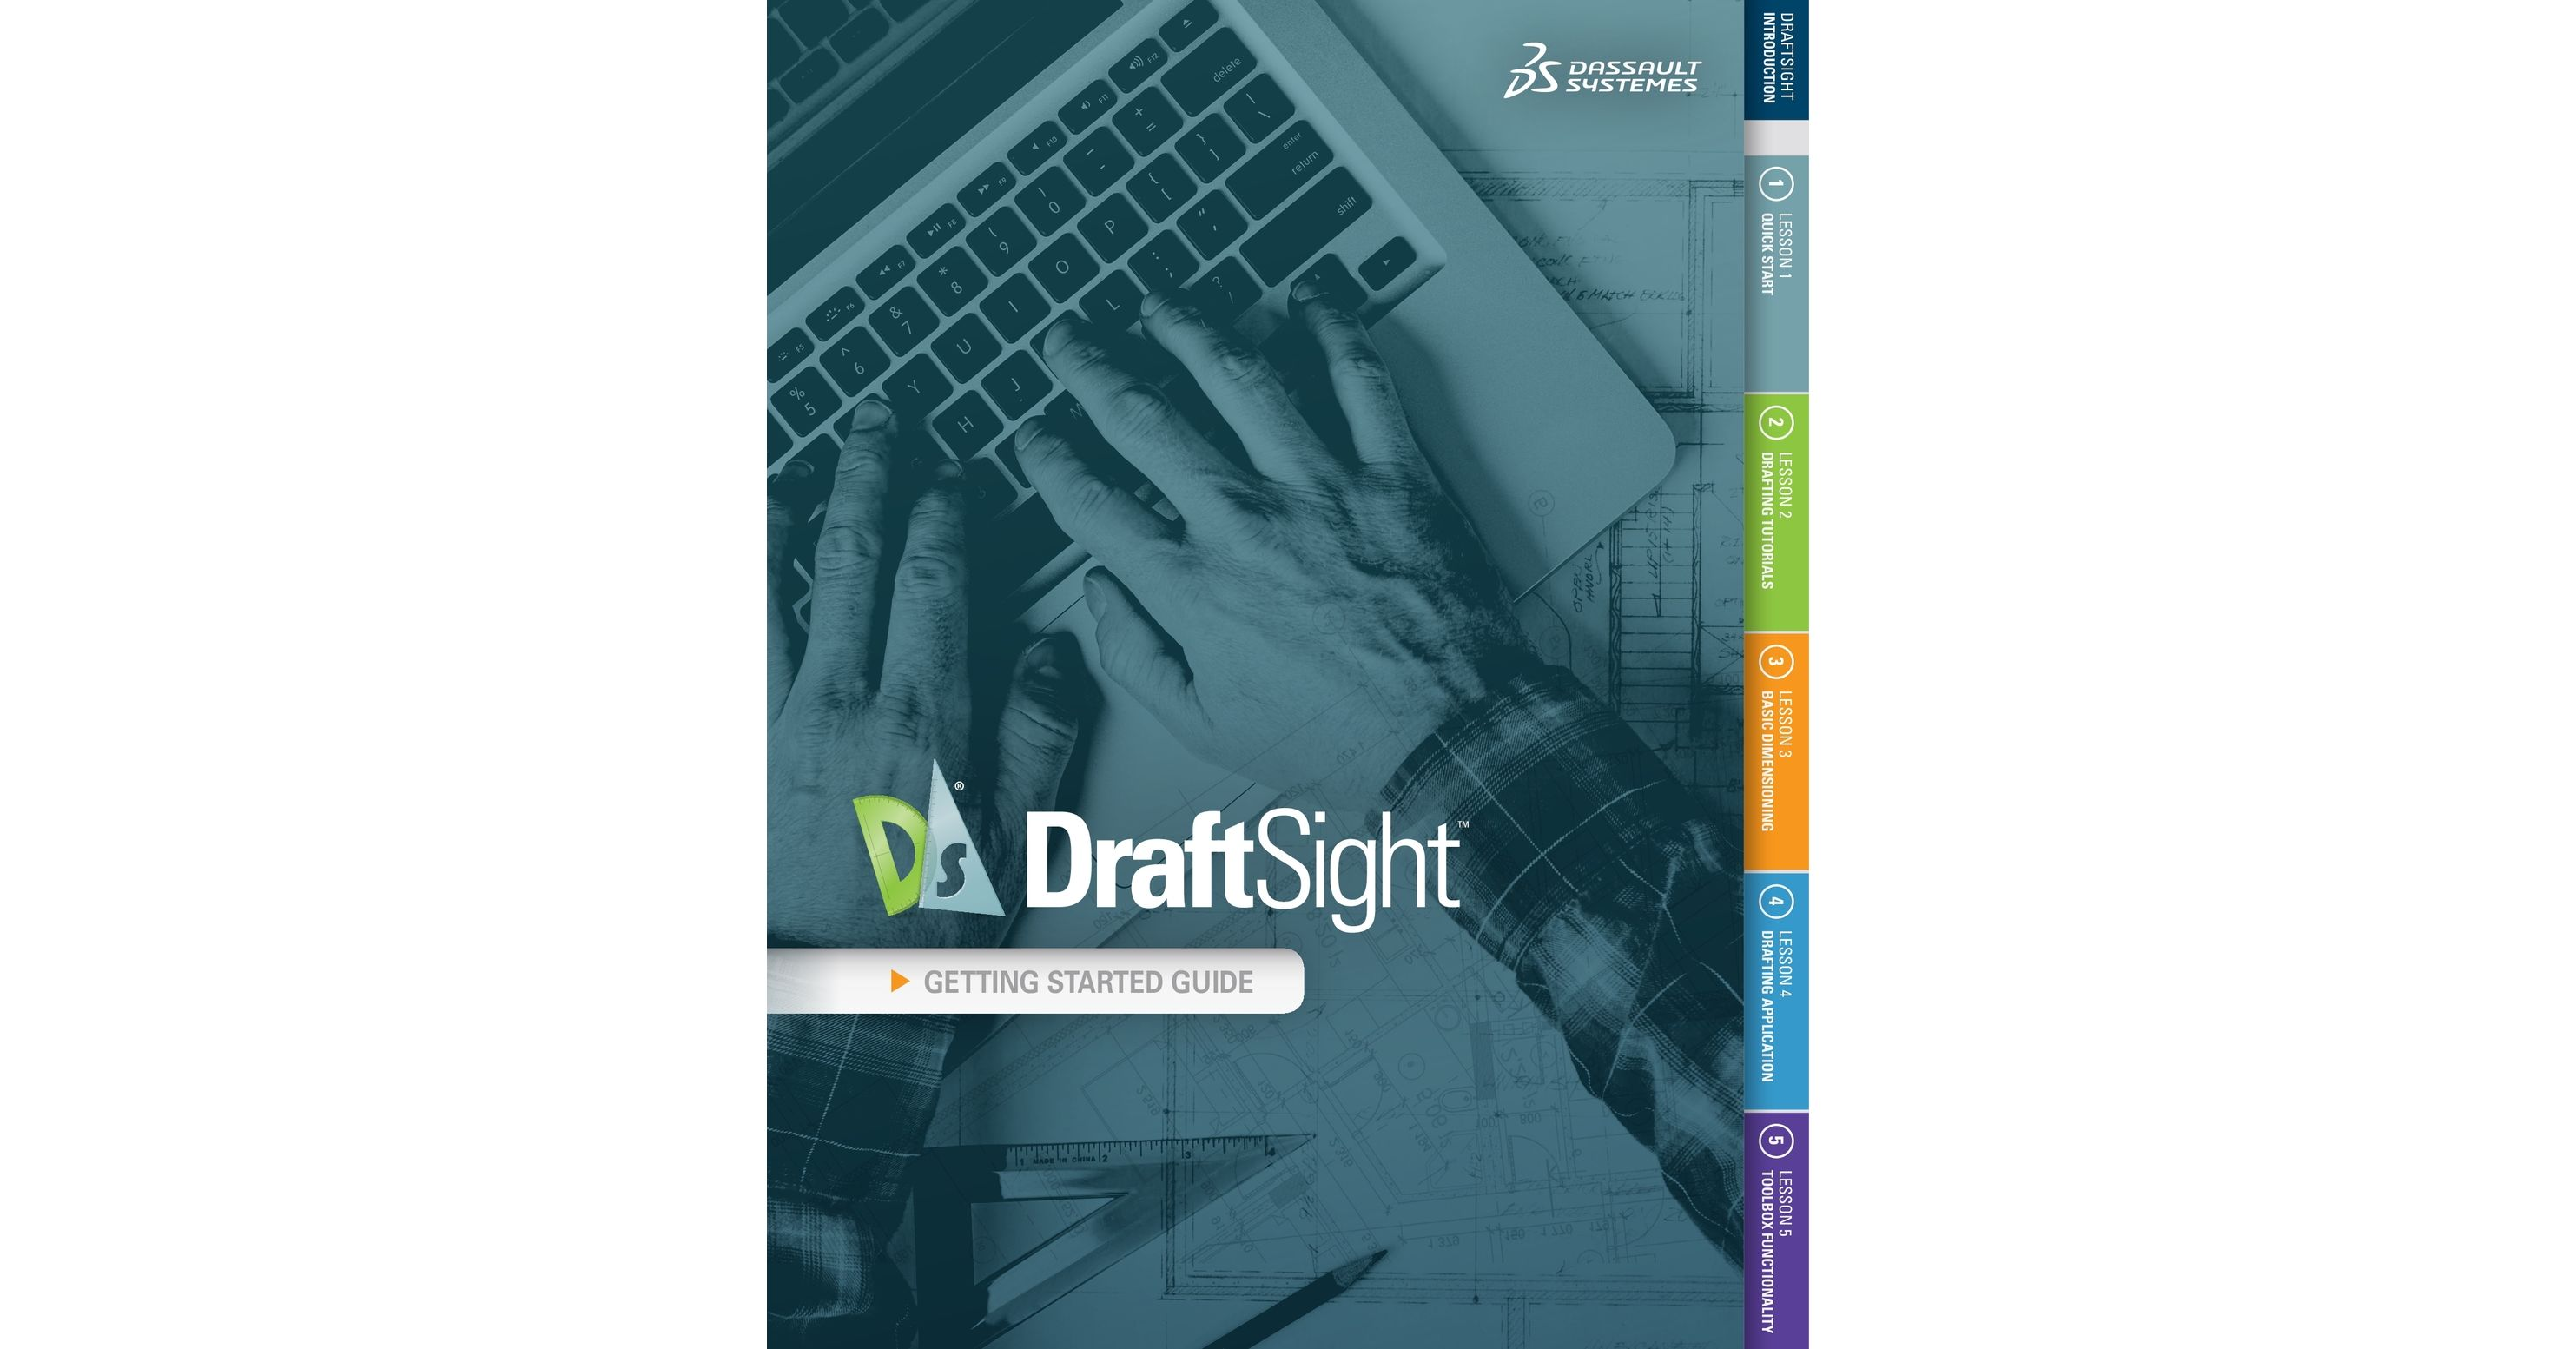 DraftSight Getting Started Guide